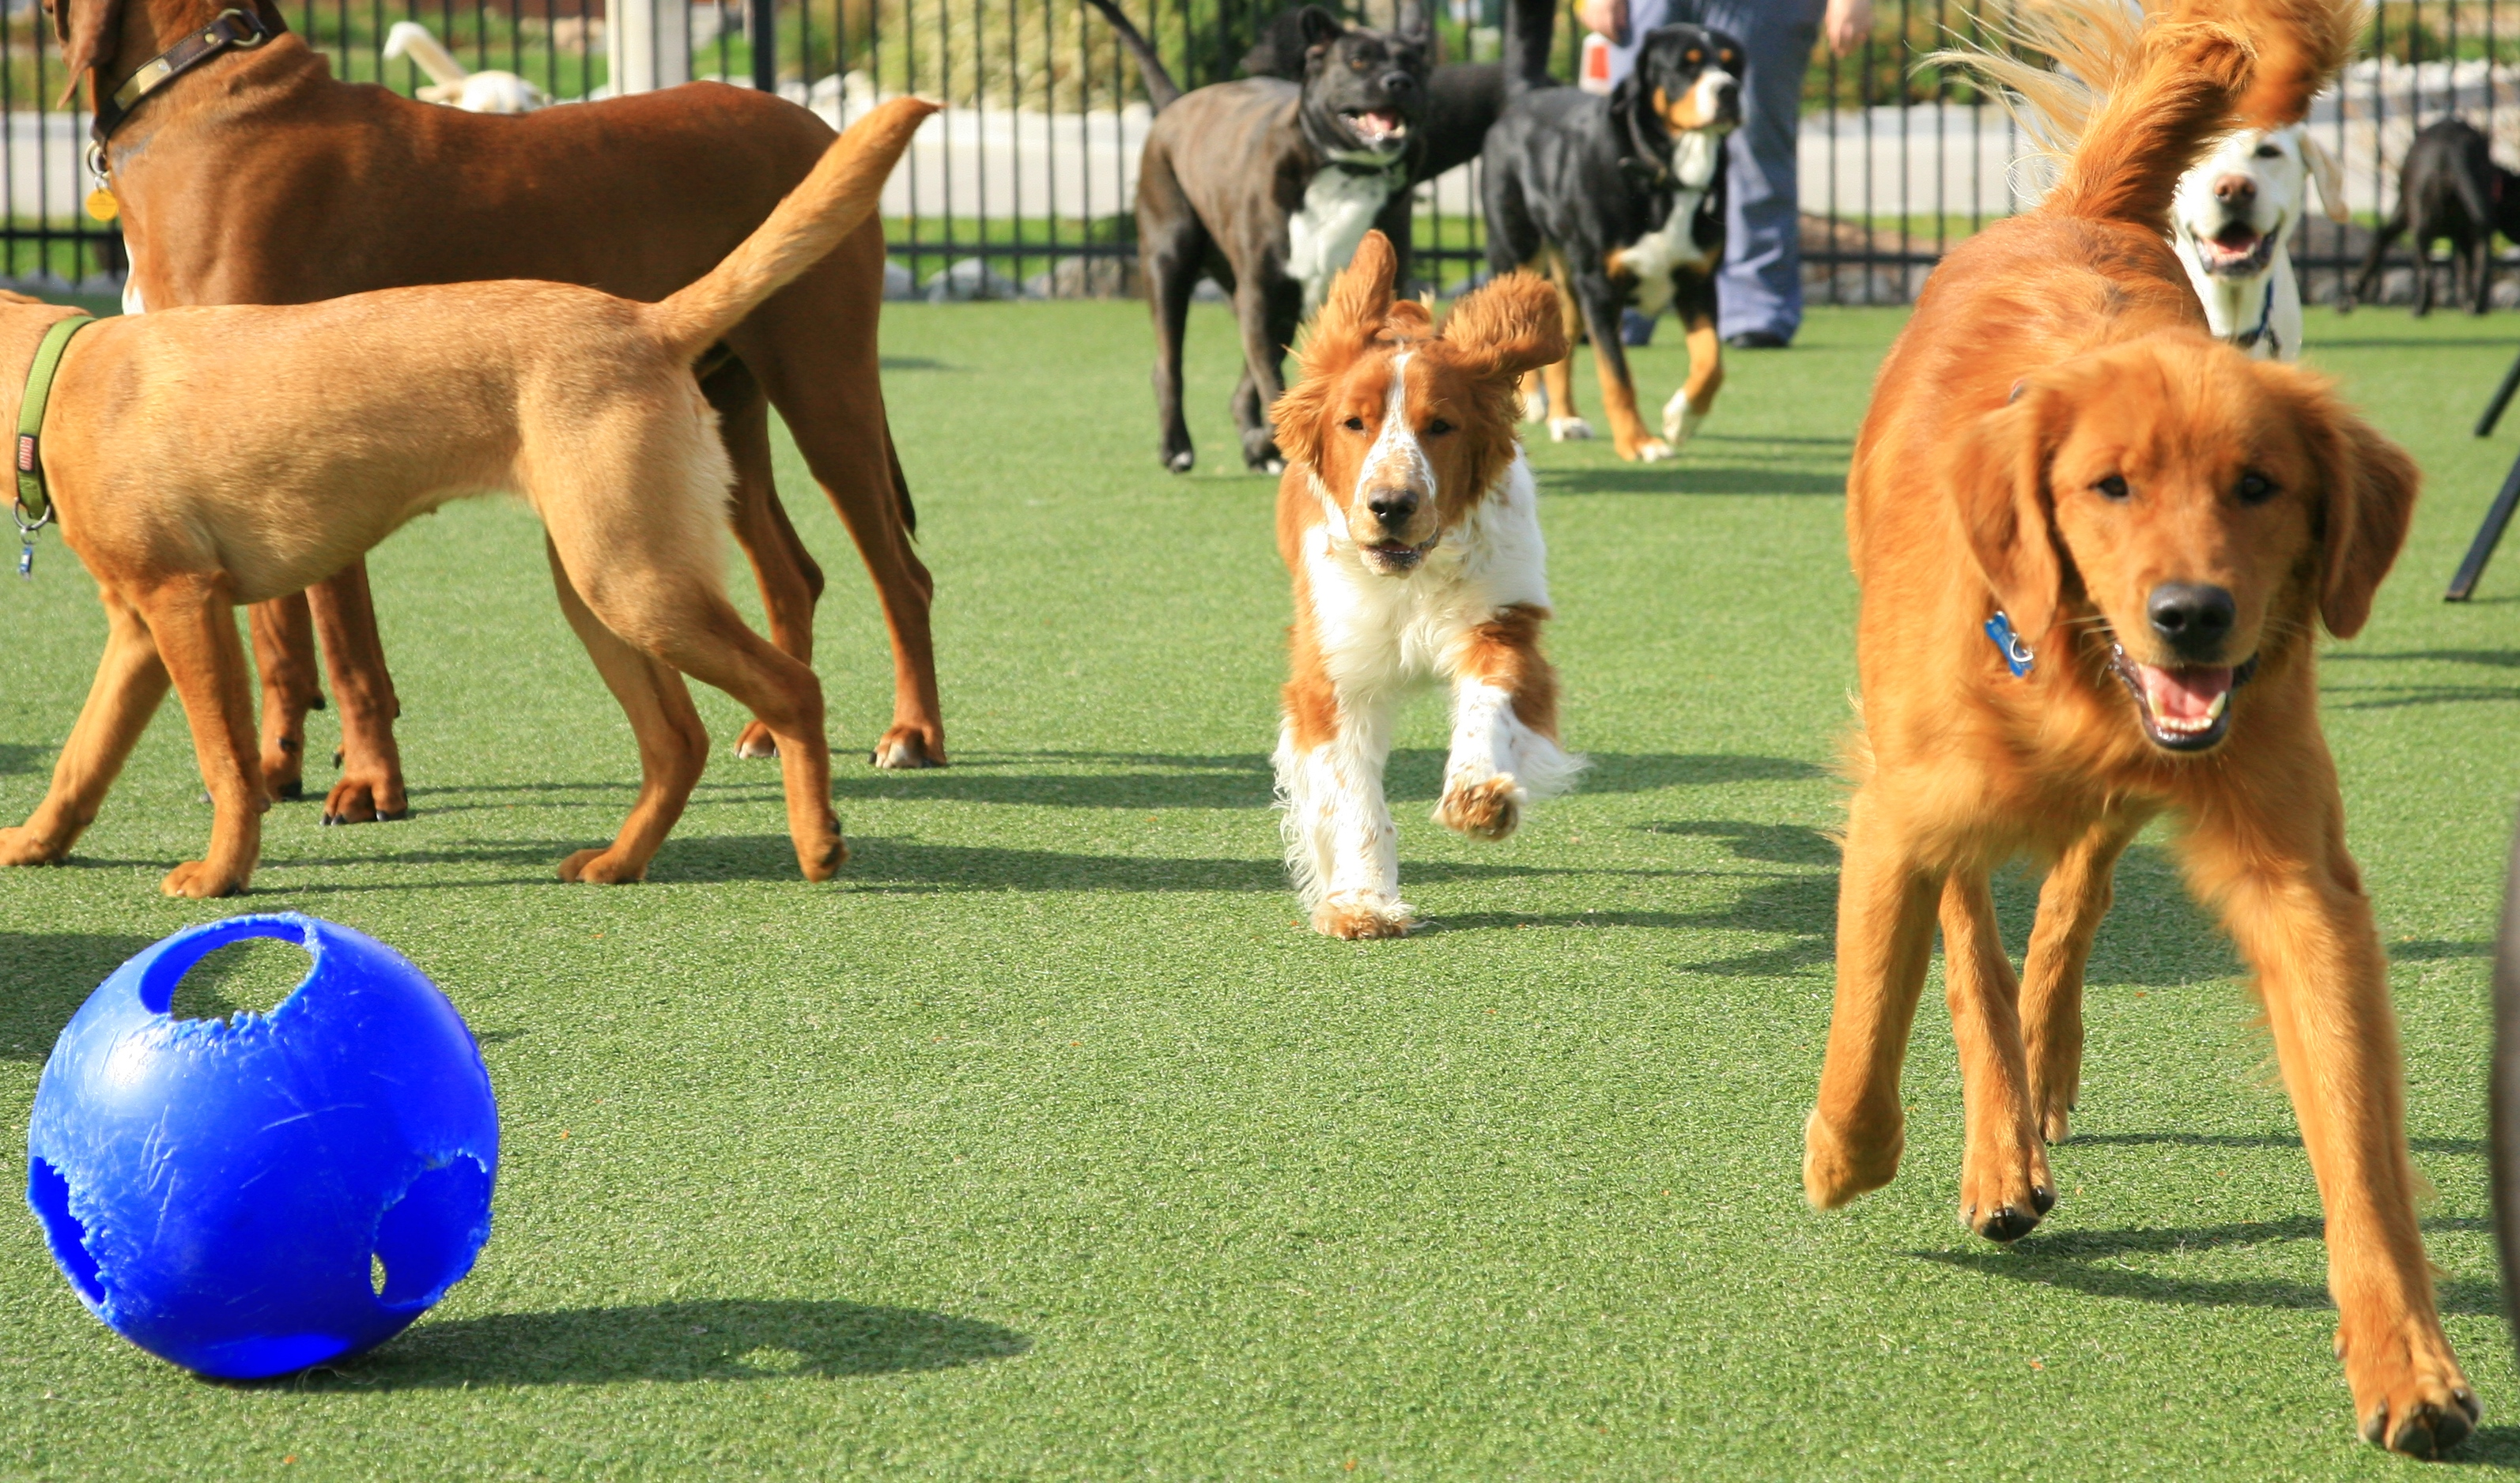 Have You Thought About Doggy Day Care For Your Dog?